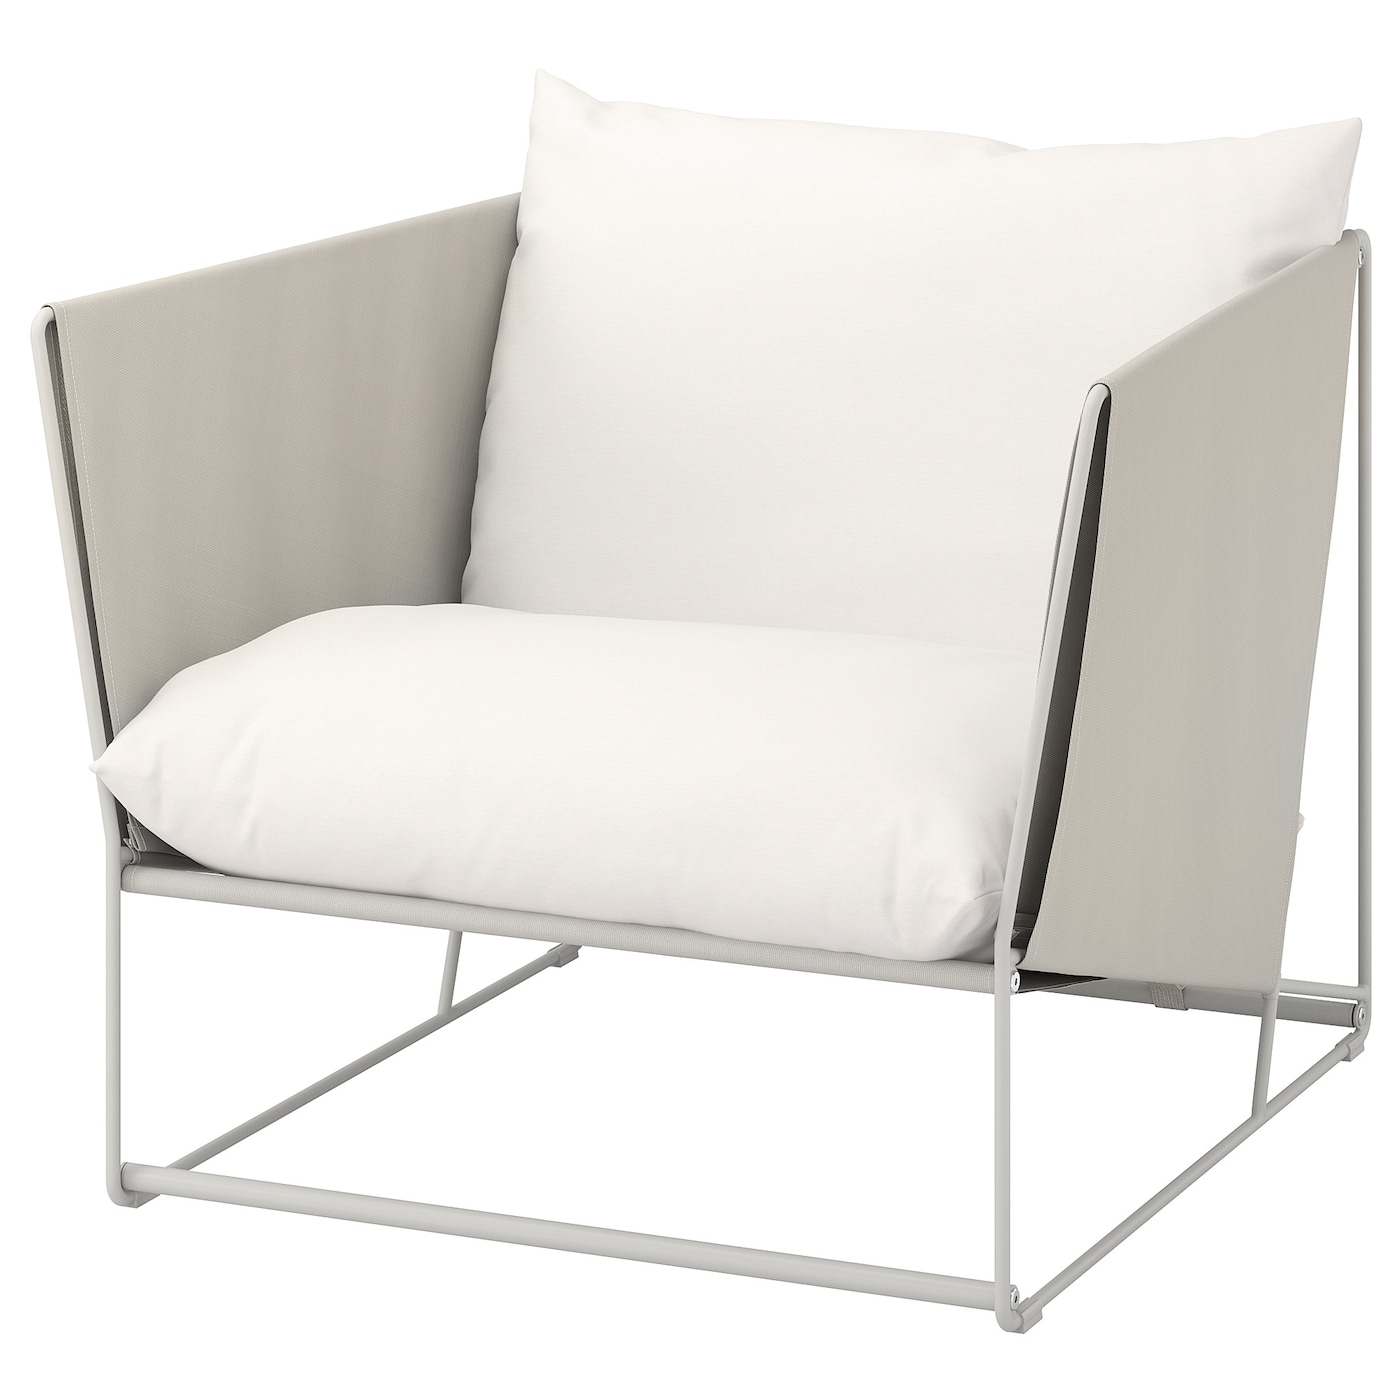 HAVSTEN Armchair, in/outdoor - beige 7x7x7 cm